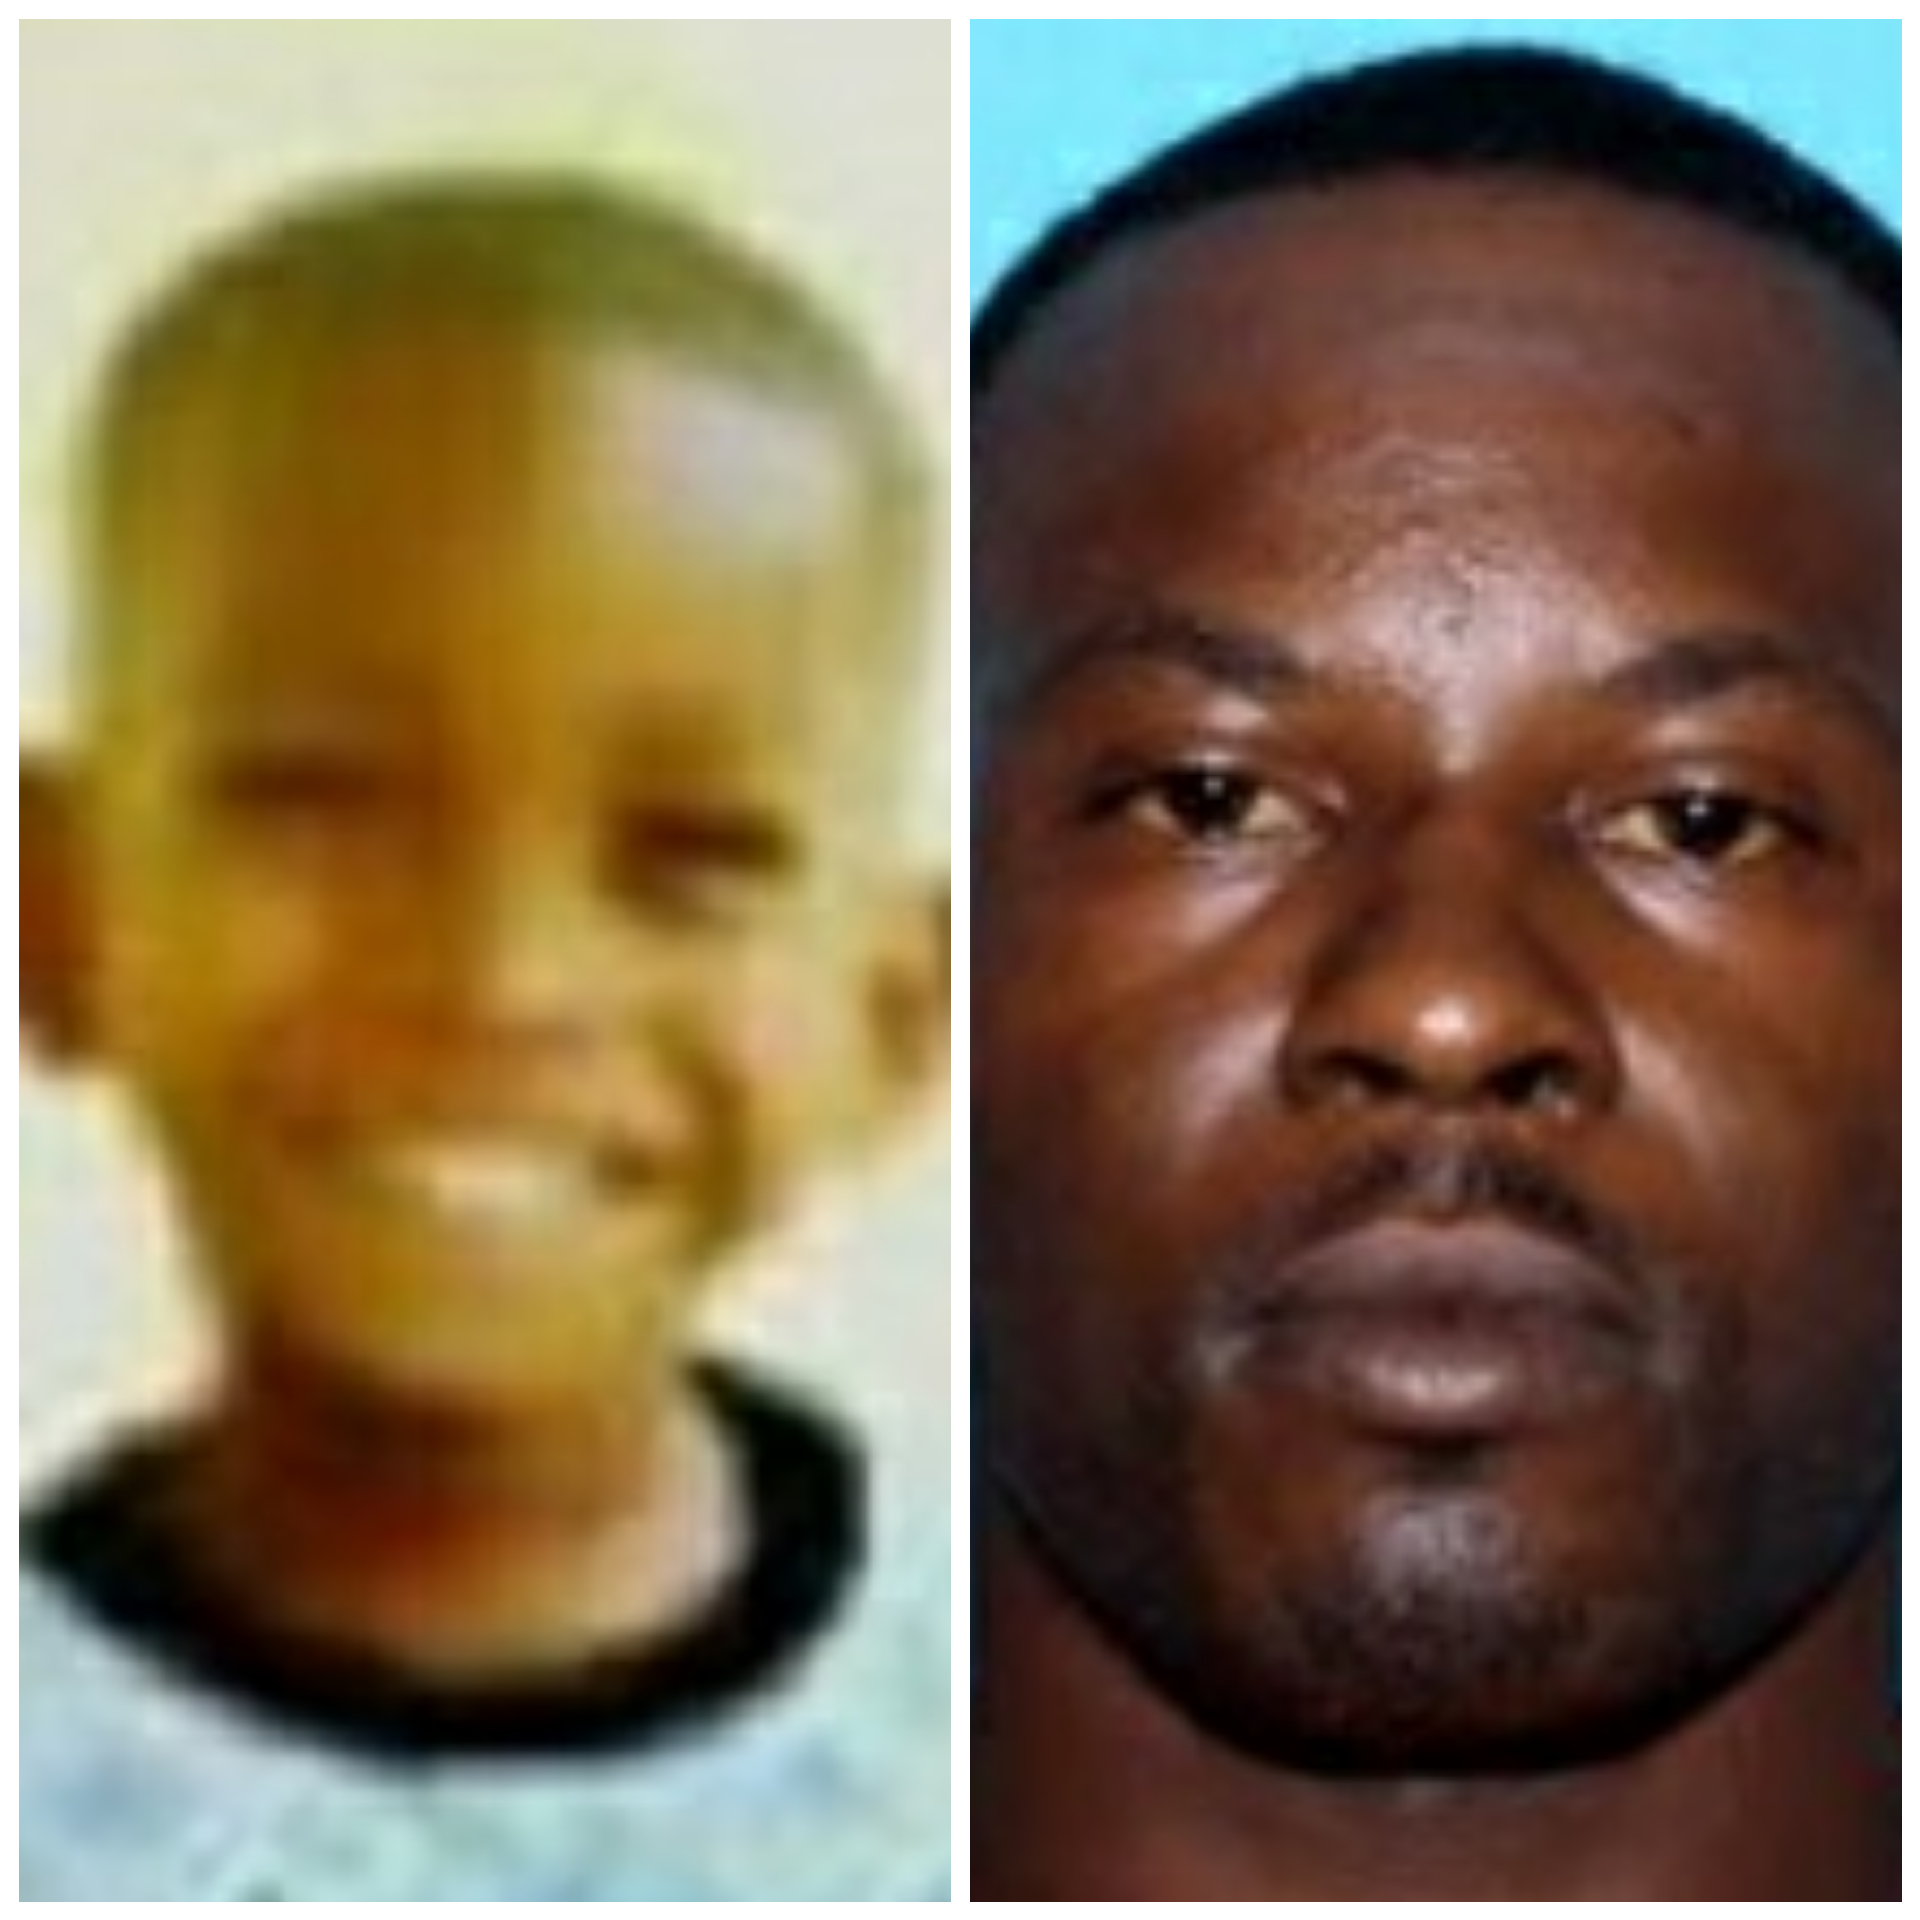 Saraland police find missing boy — AMBER ALERT CANCELED